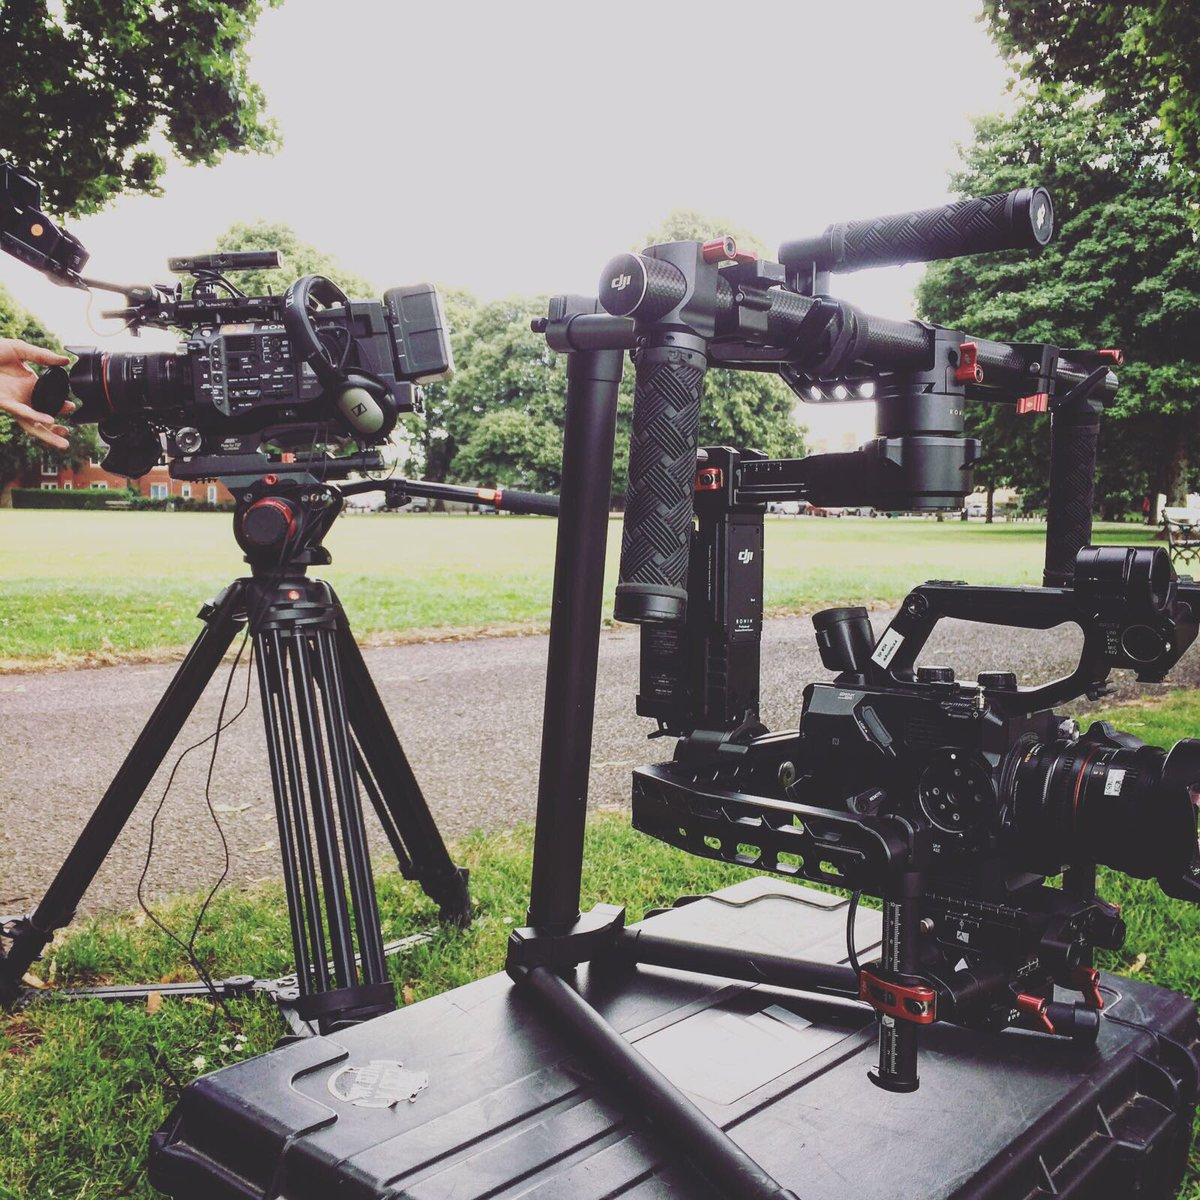 Our Sony cameras out on location this week!  #Sony #ronin #Filmmaking<br>http://pic.twitter.com/mk5eTAvhDZ